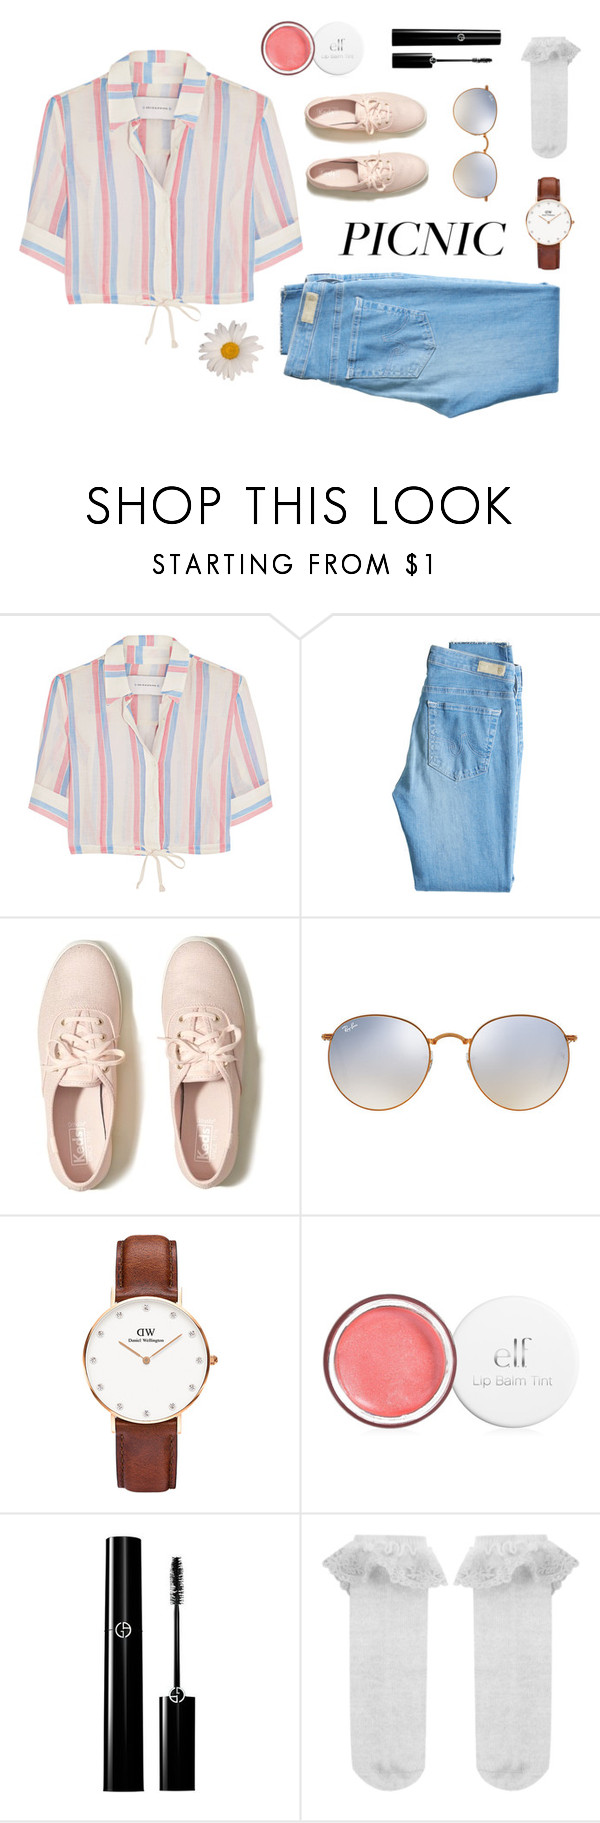 """Sunshine"" by yvonnestrahovskii ❤ liked on Polyvore featuring Solid & Striped, AG Adriano Goldschmied, Hollister Co., Ray-Ban, Daniel Wellington and Monsoon"